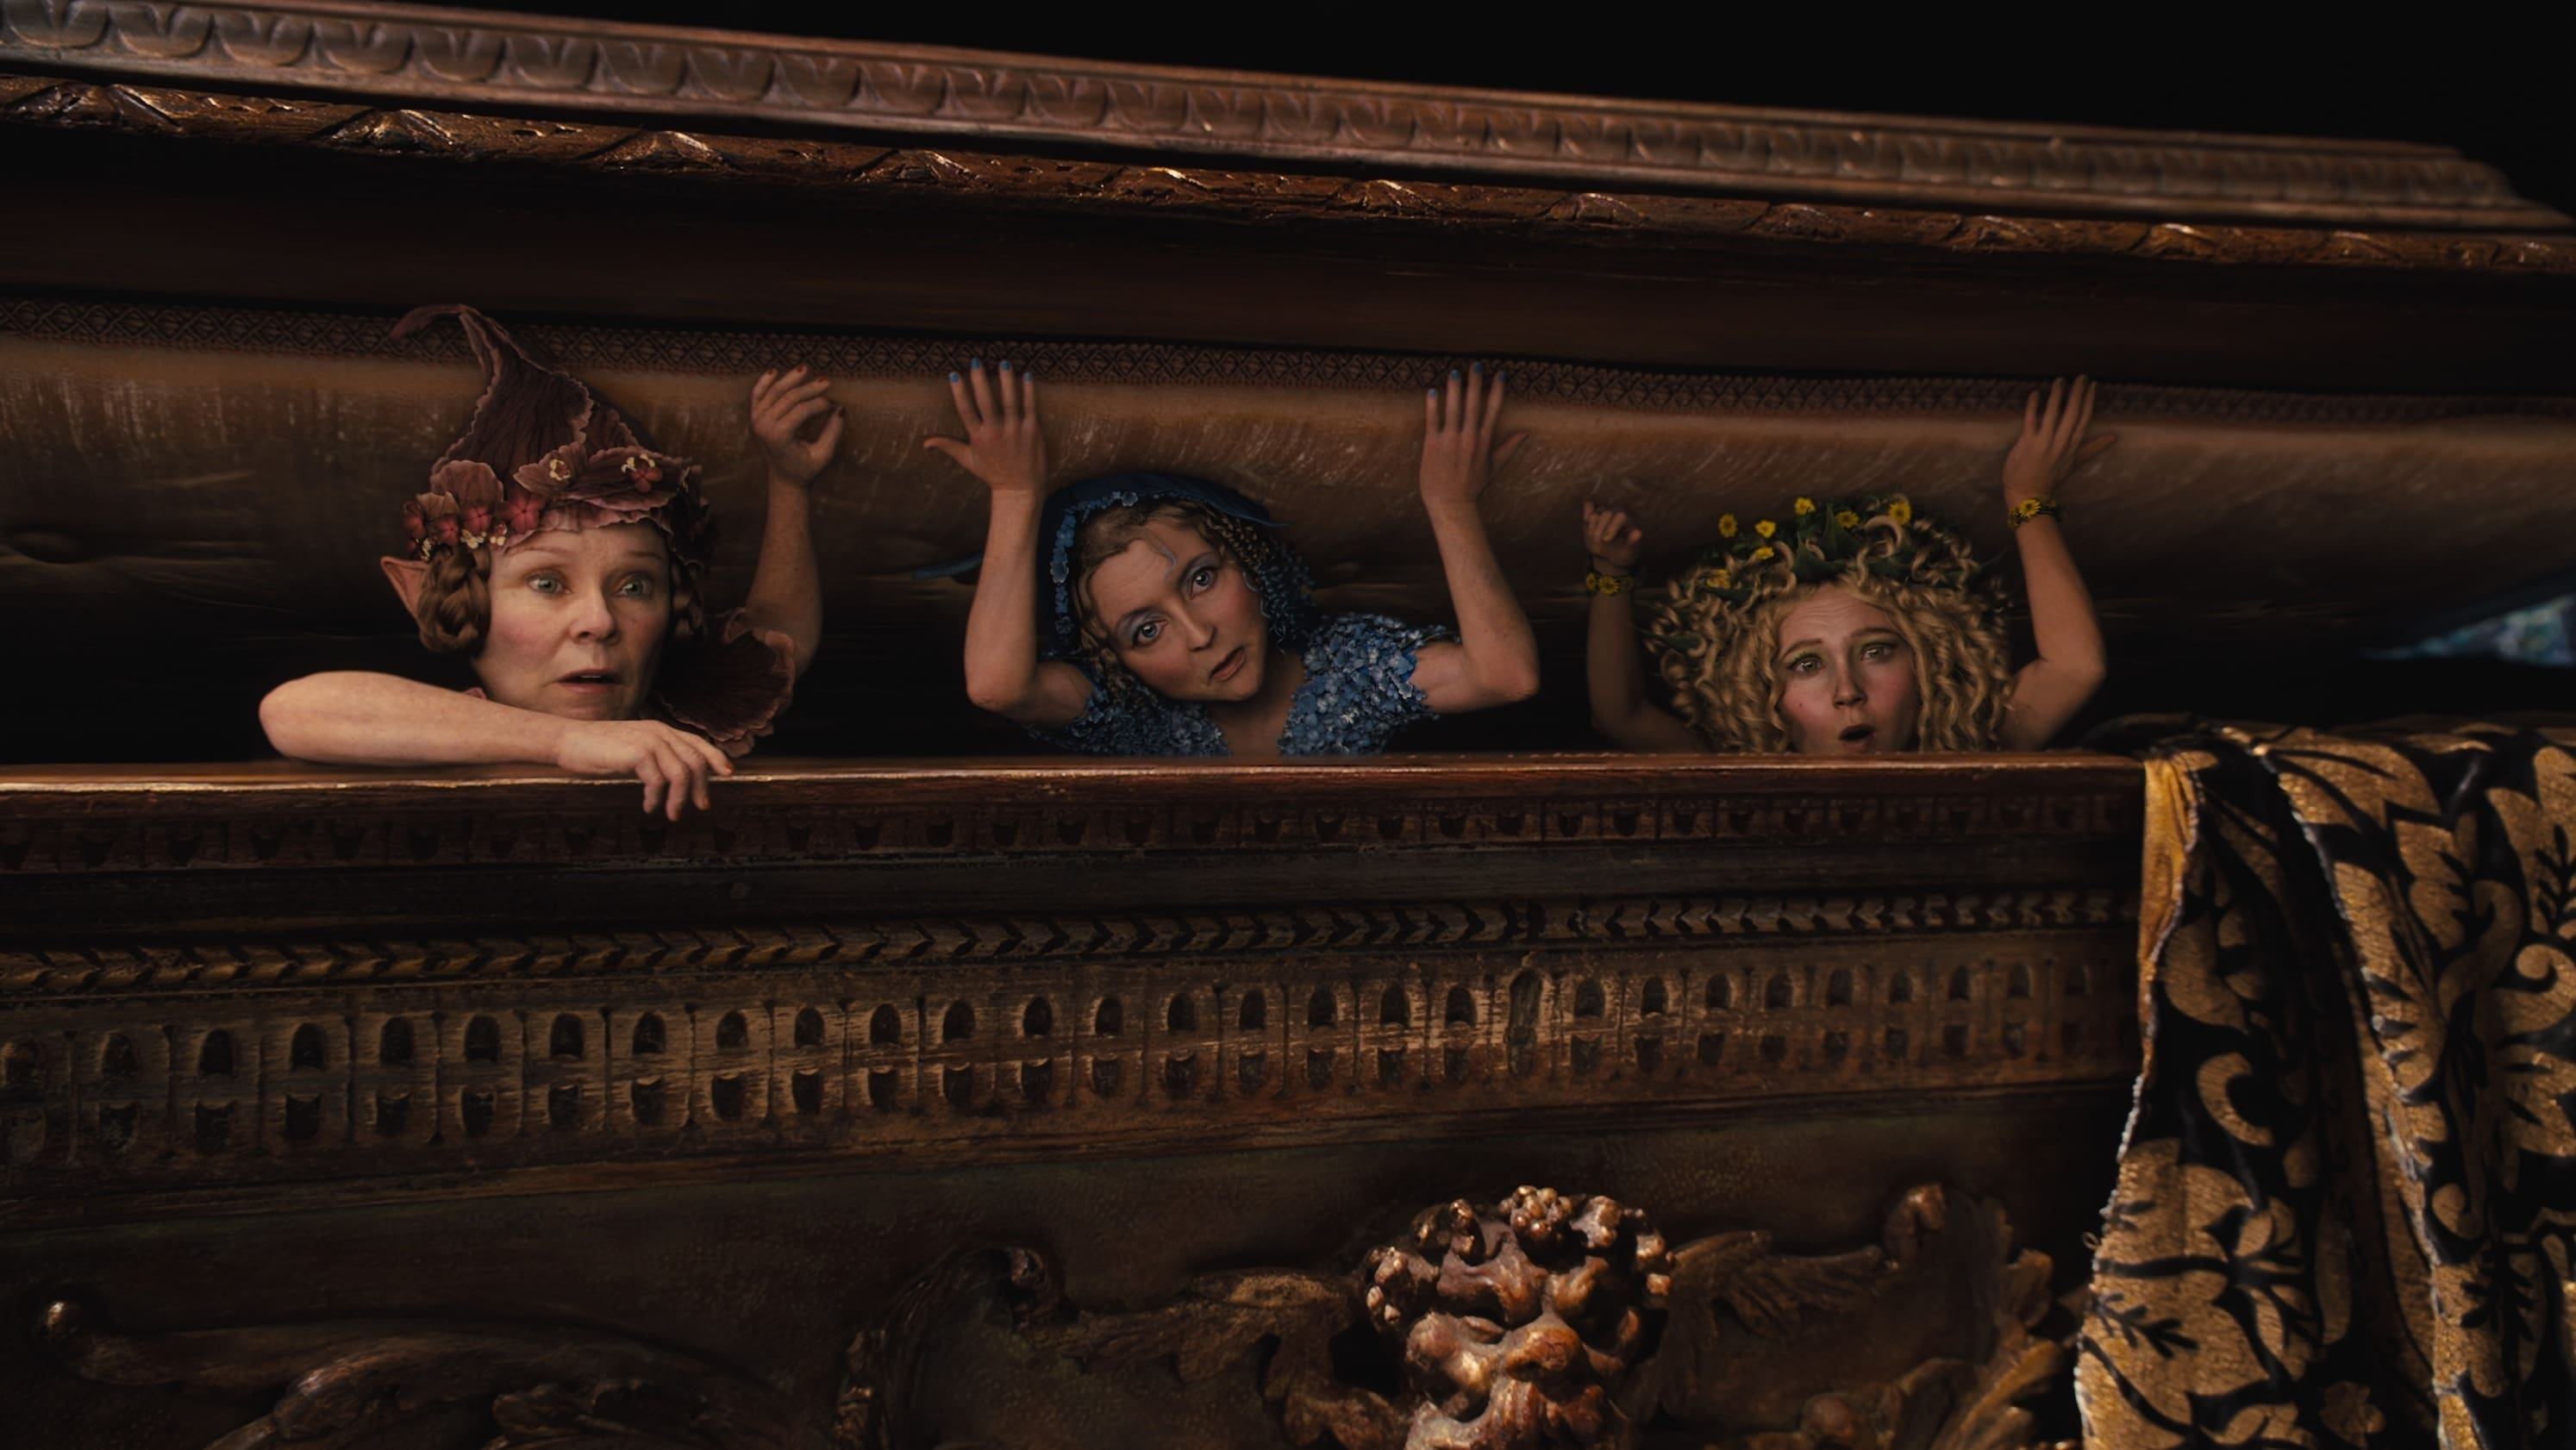 """The three flower pixies, Knotgrass (played by Imelda Stauton), Flittle (played by Lesley Manville), and Thistlewhit (played by Juno Temple) peeking out of a box in the movie """"Maleficent"""""""